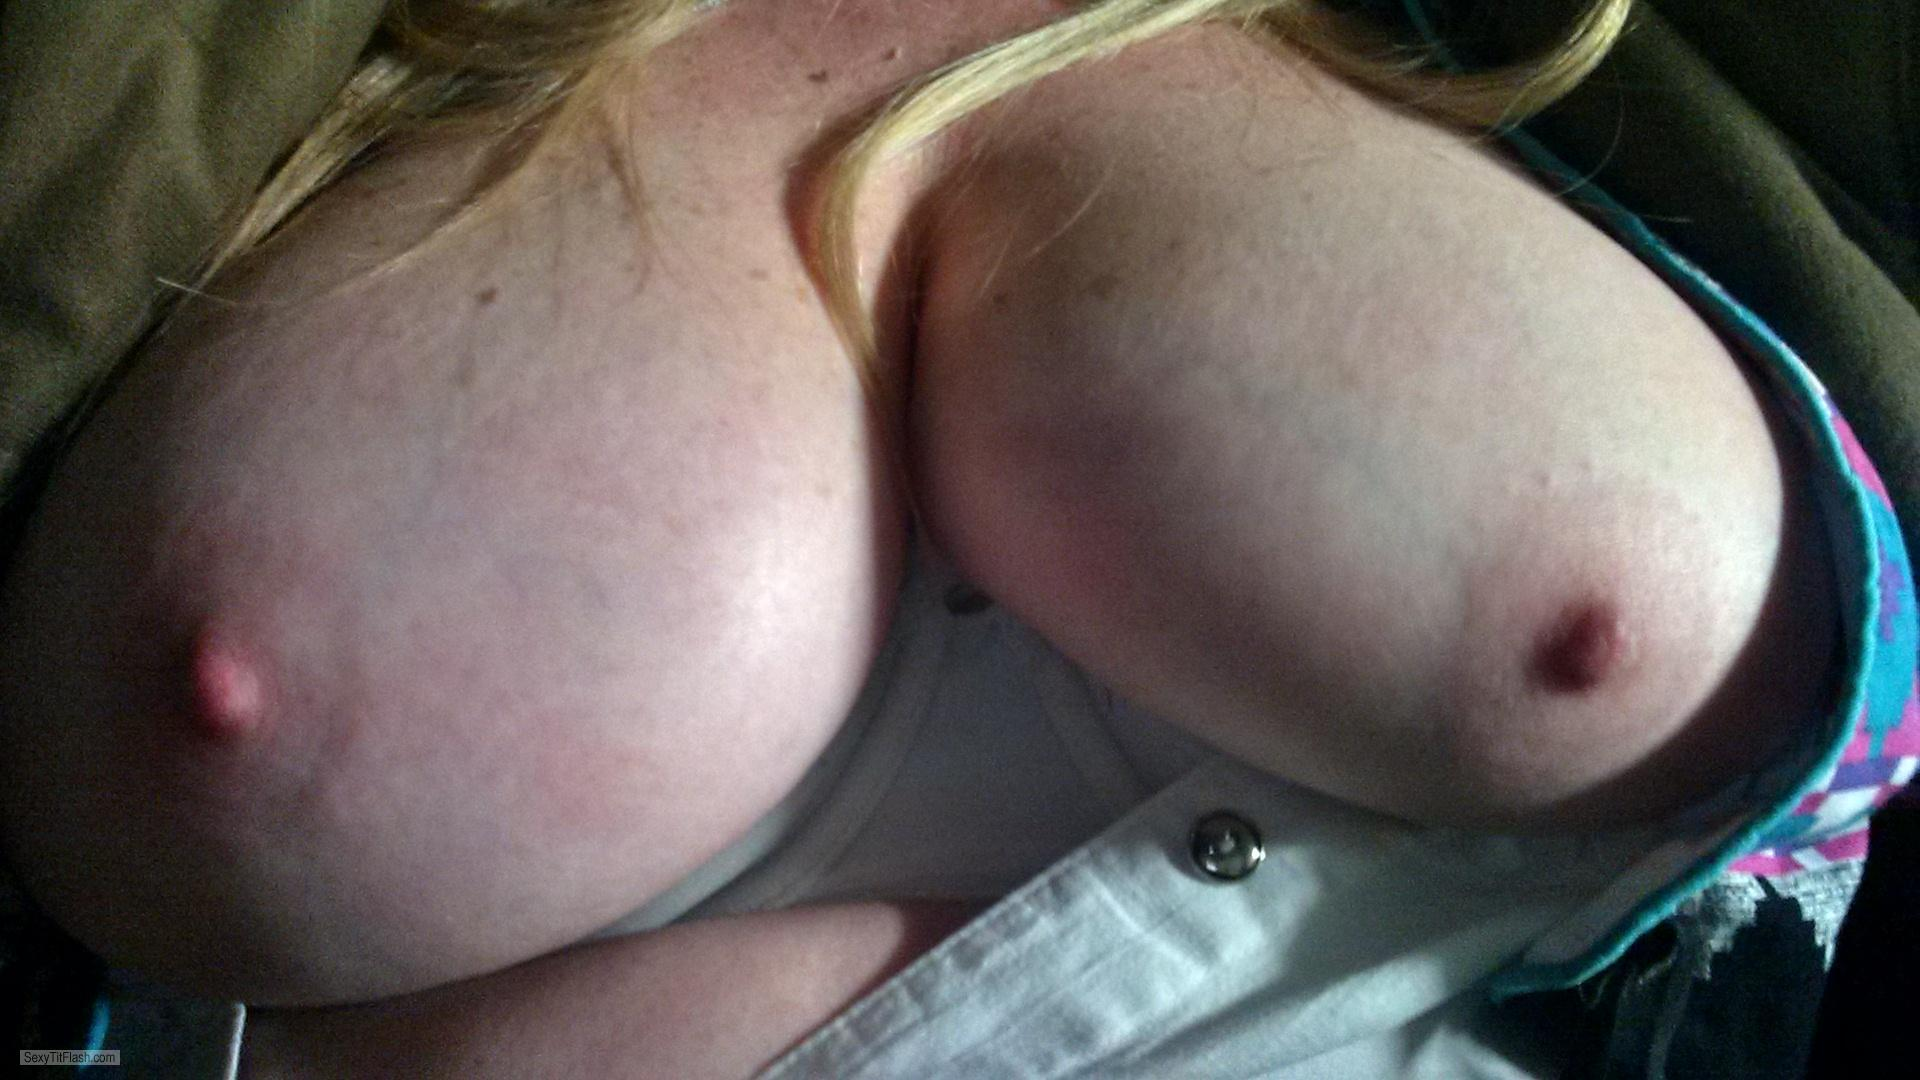 Big Tits Of My Girlfriend Selfie by Willow Girl